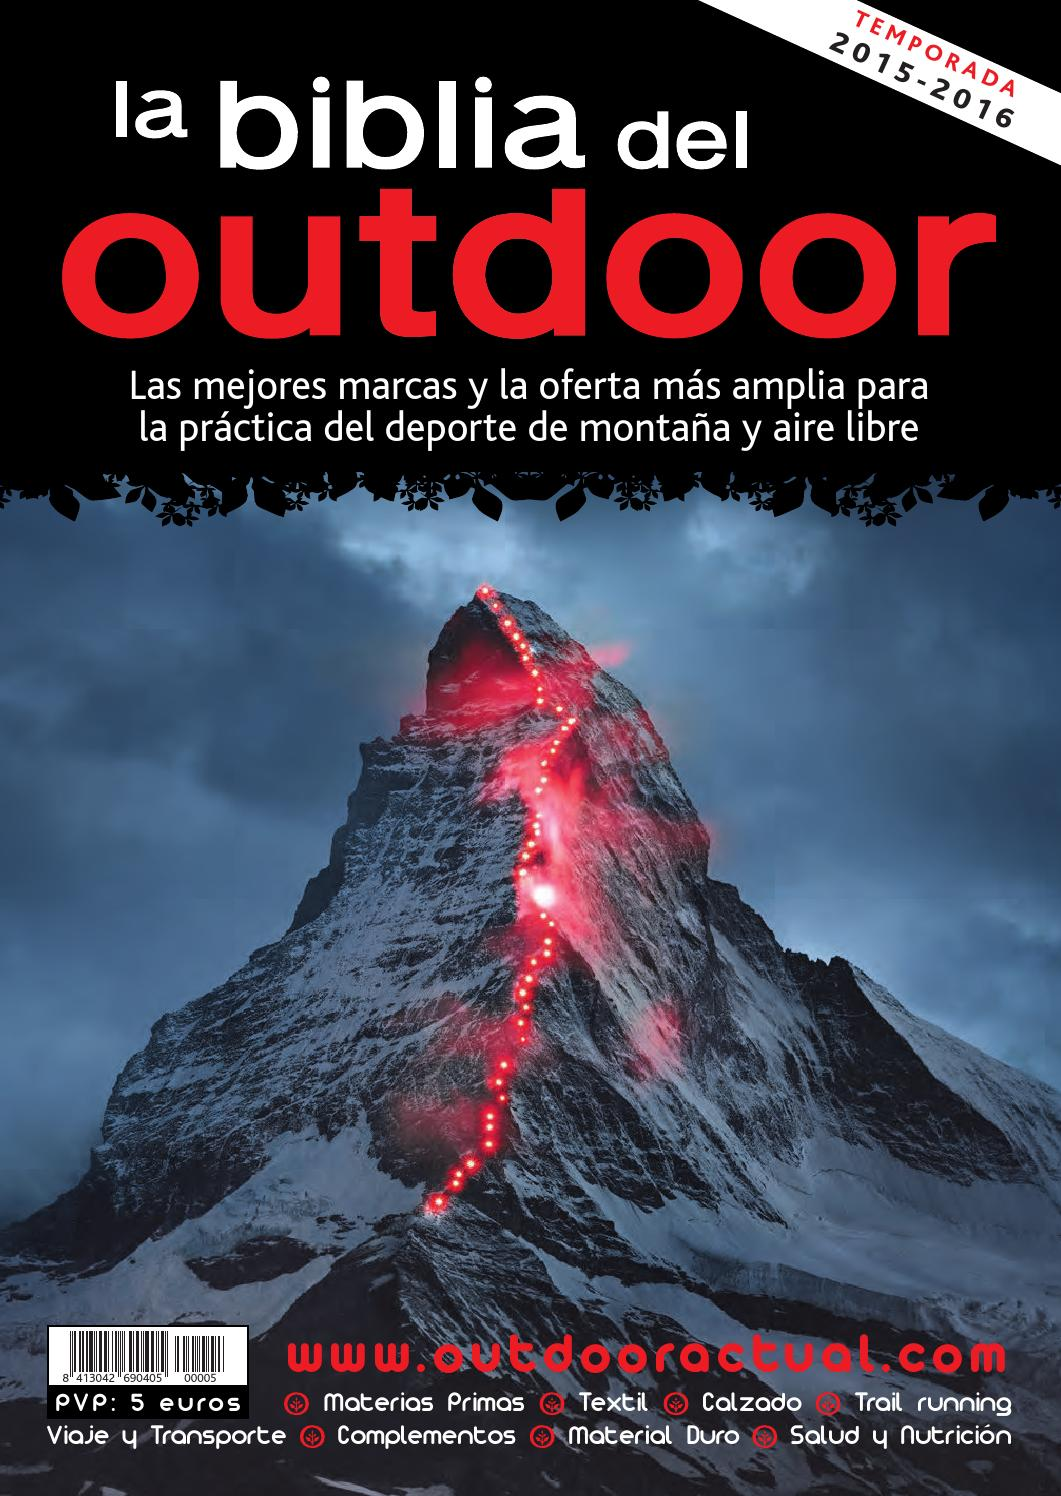 new styles 80787 c45d7 La Biblia del Outdoor 2015-16 by Outdoor Actual - issuu